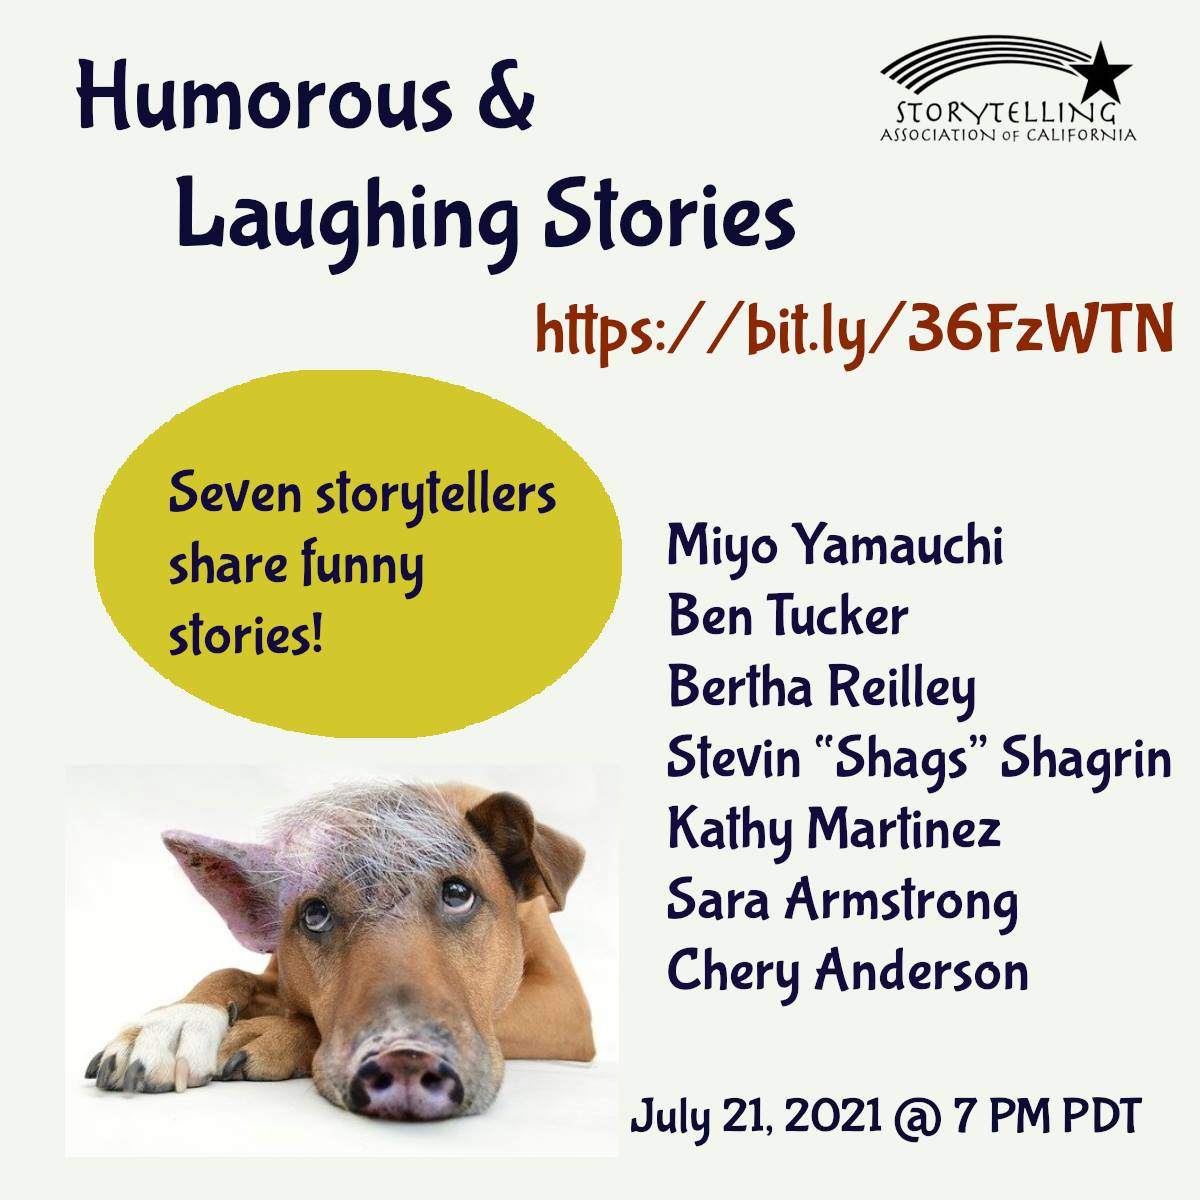 Humorous Laughing Stories Show on July 21, 2021